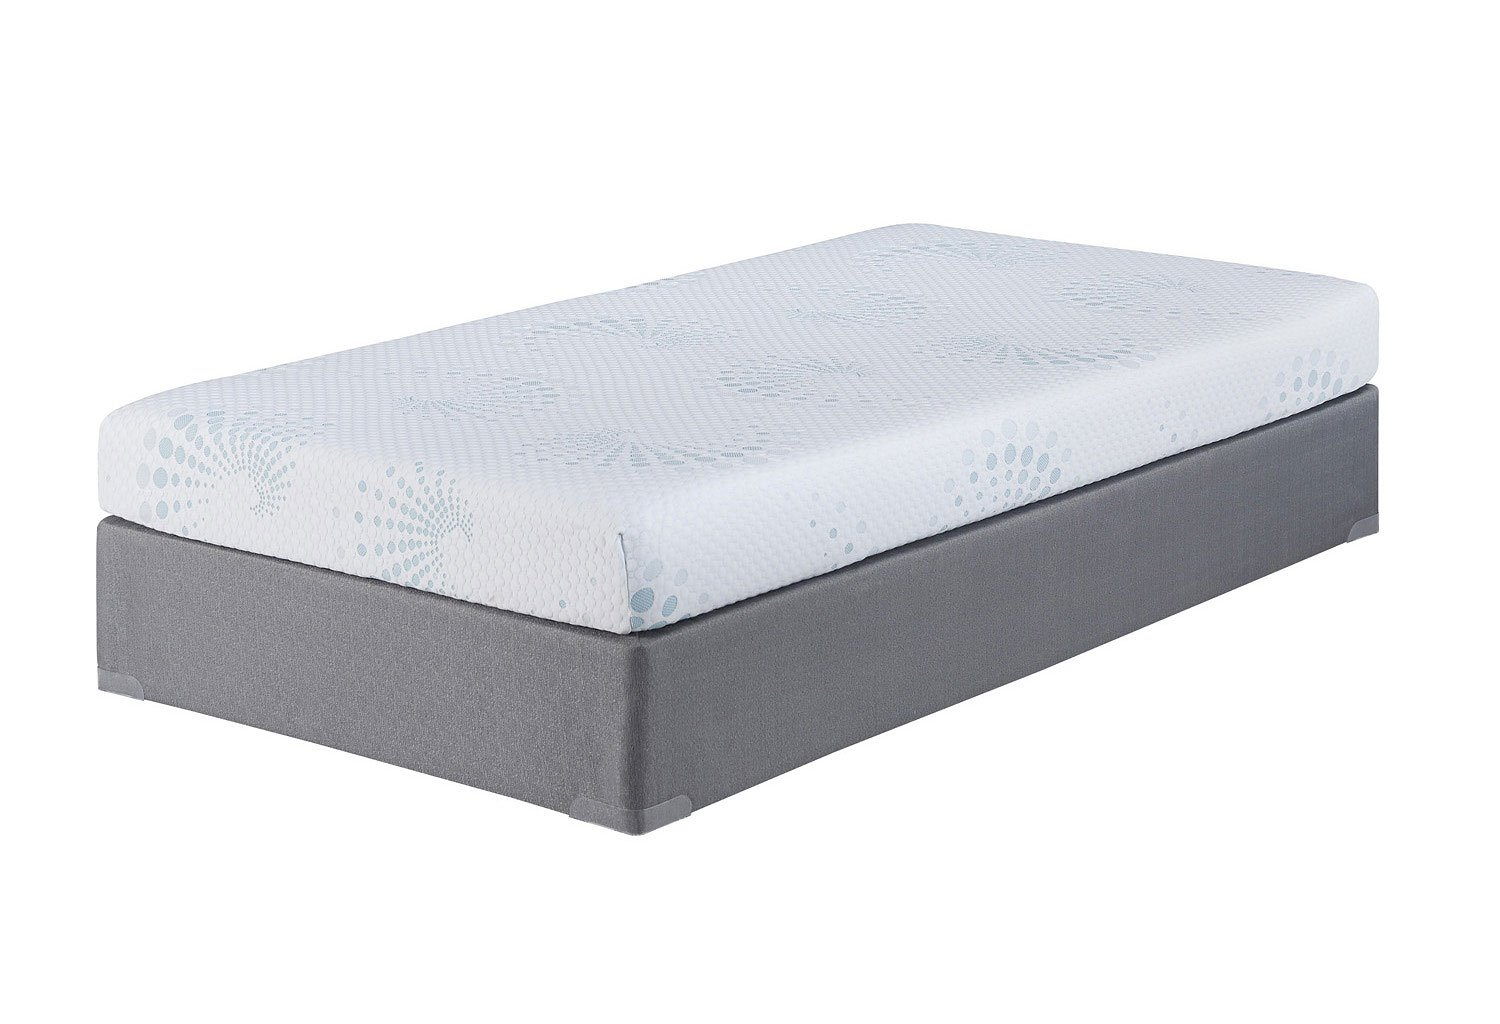 6 Inch Memory Foam Kids Mattress